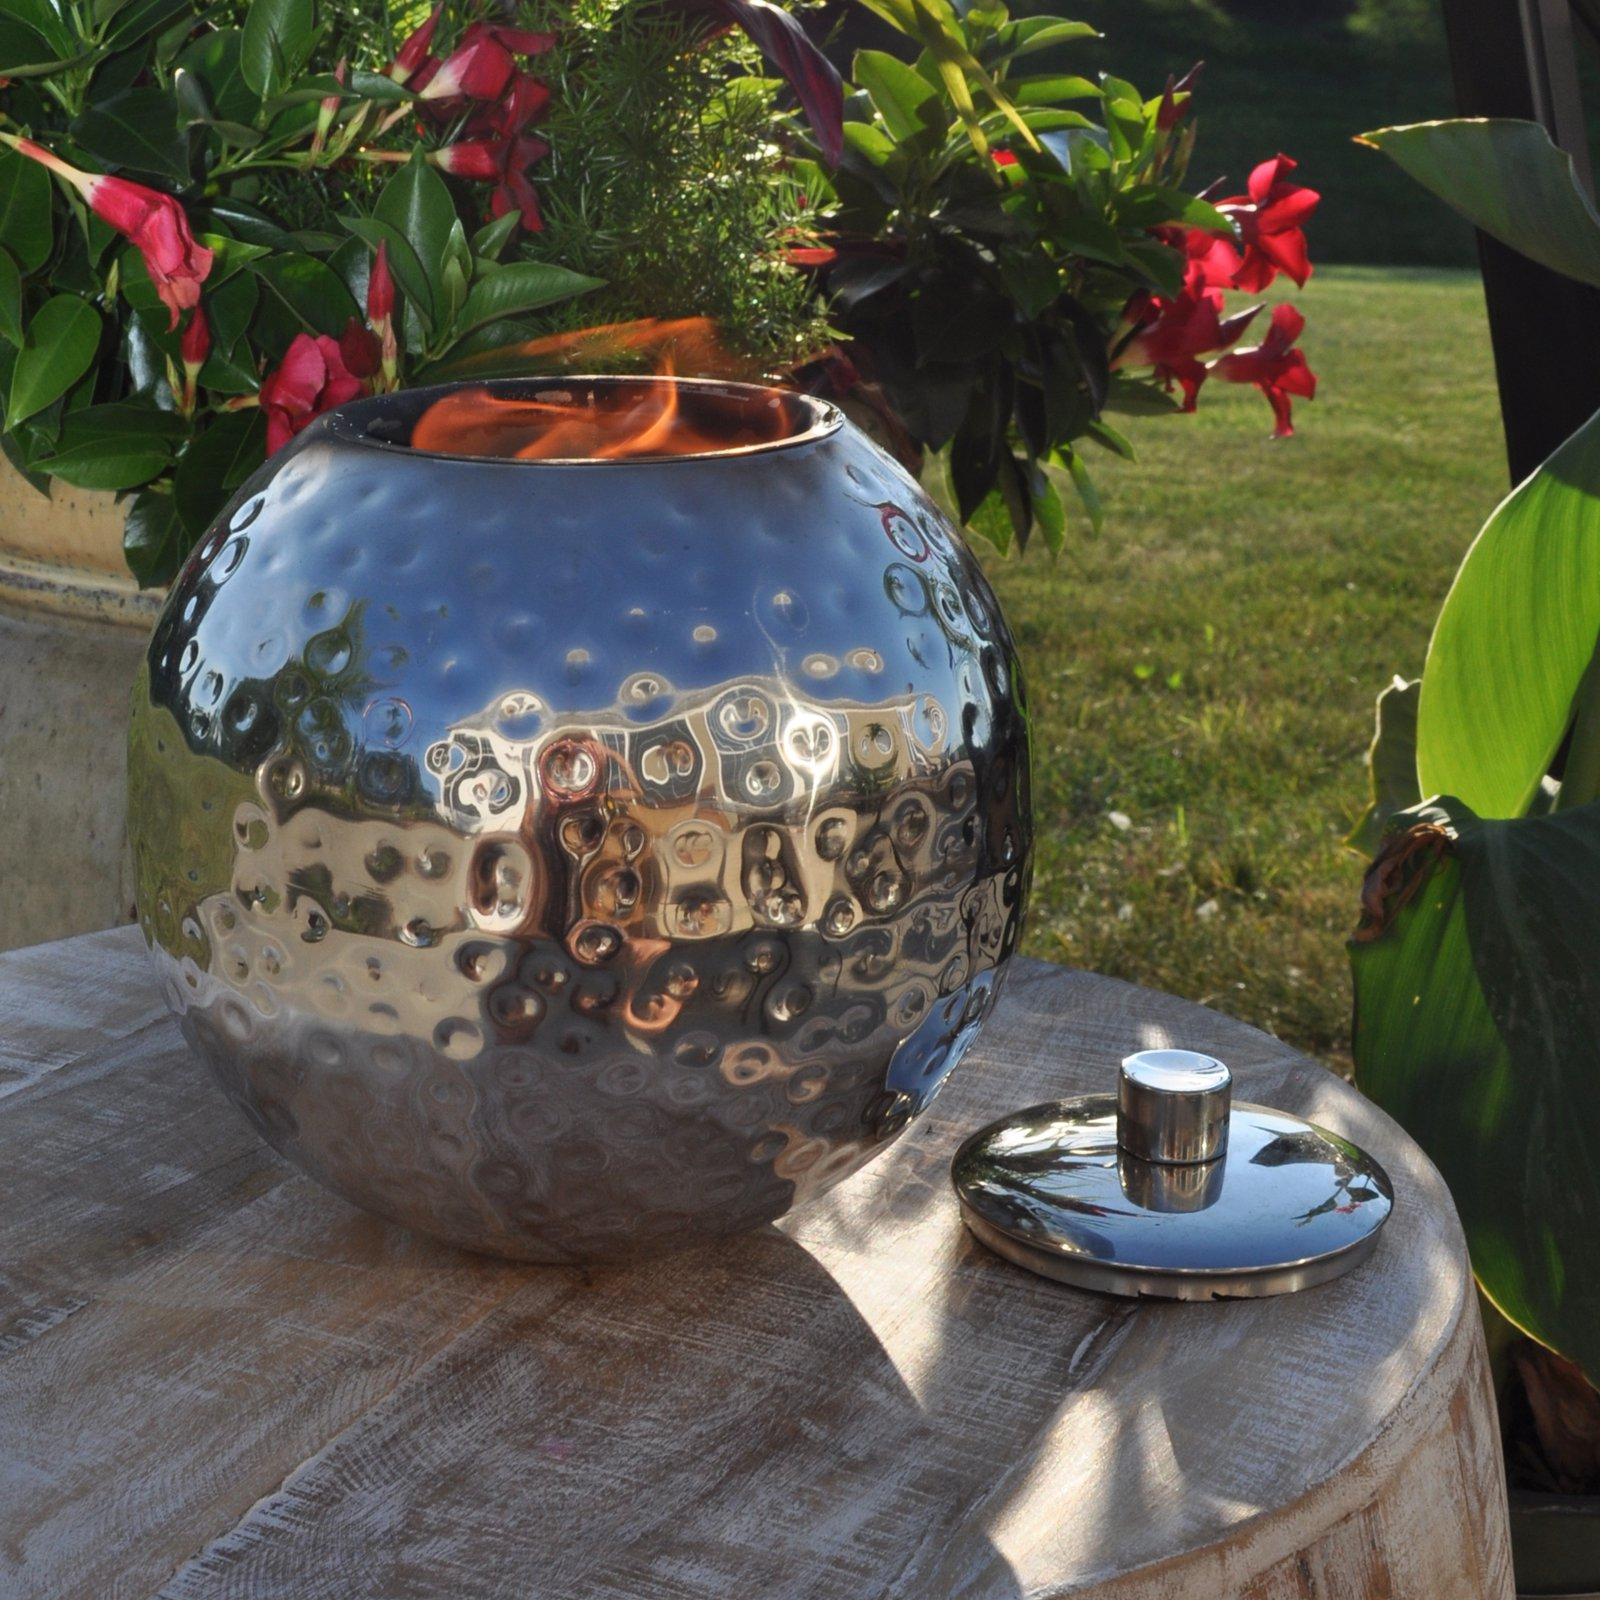 Olympia Firepot Torch by Starlite Garden and Patio Torche Co.